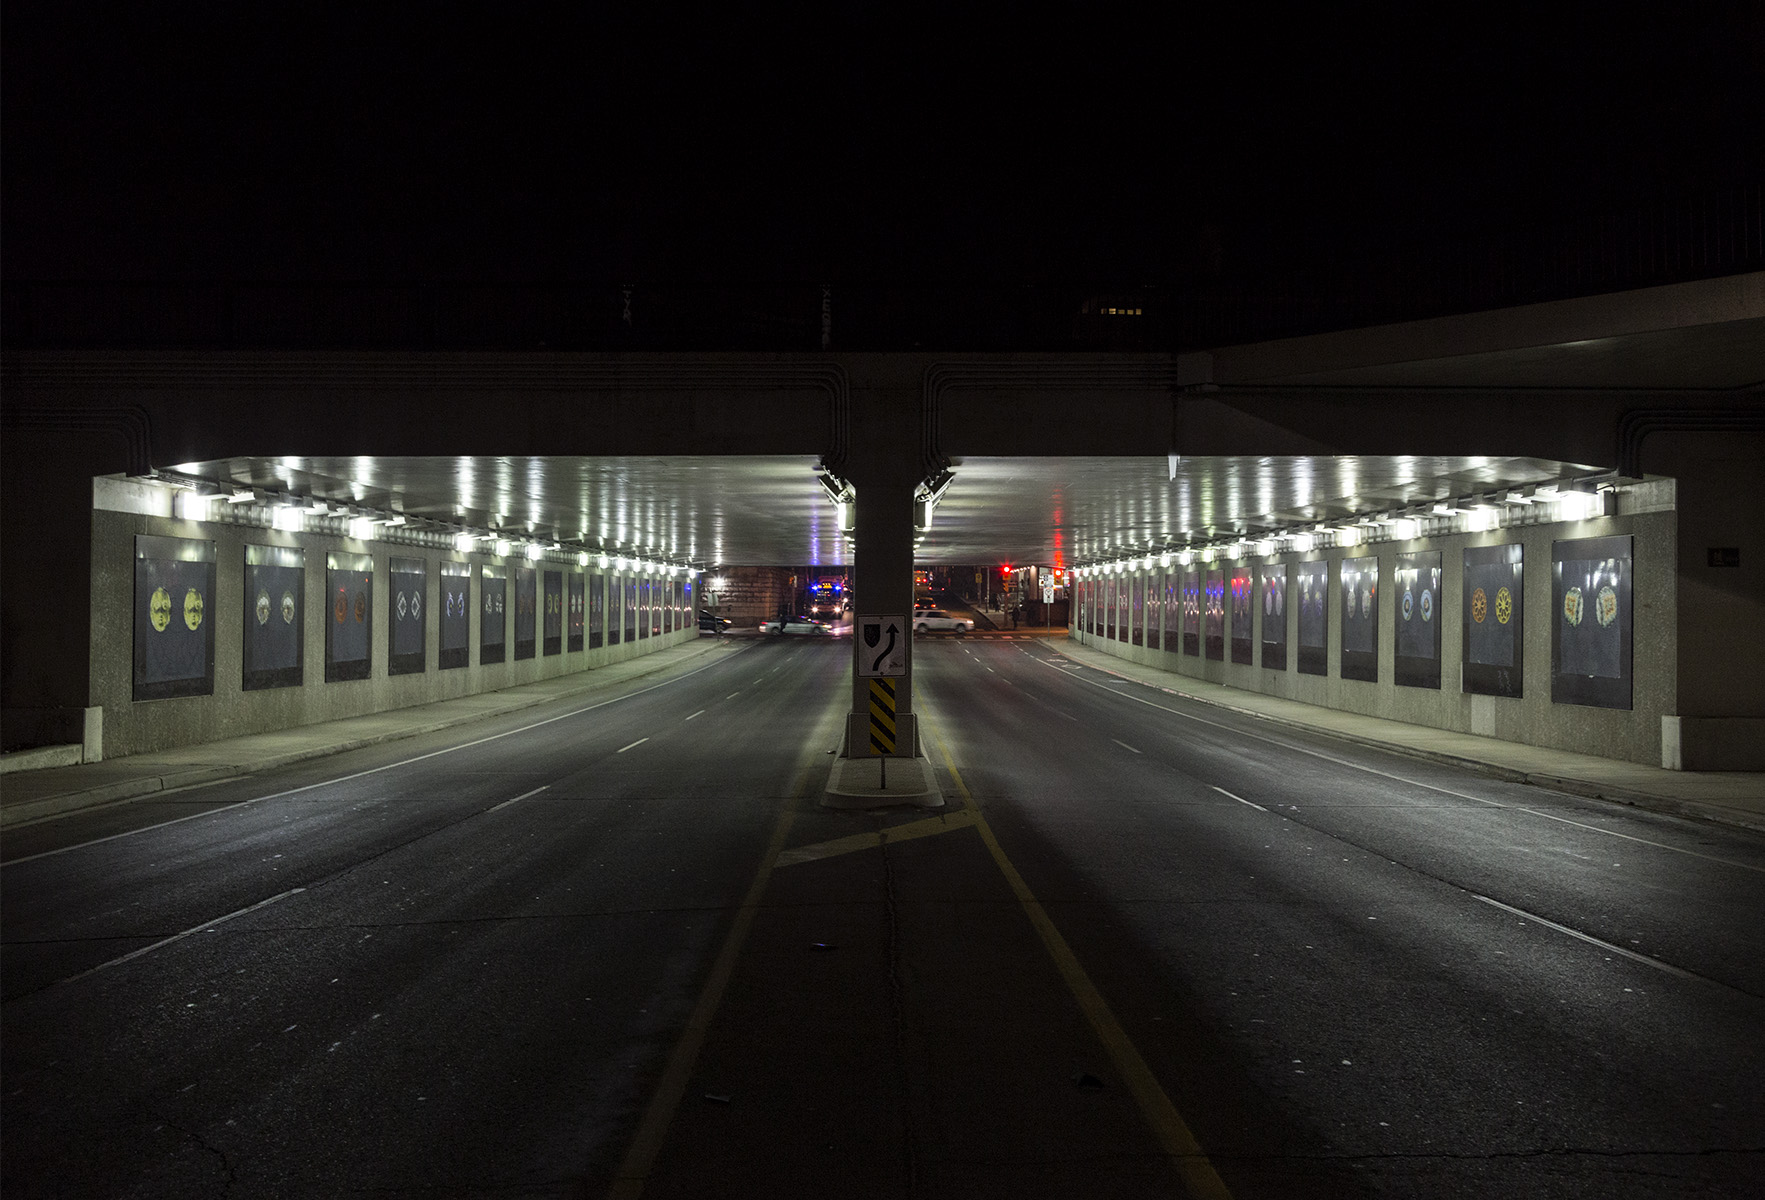 20160109. Approaching the bright Dufferin Street underpass at ni